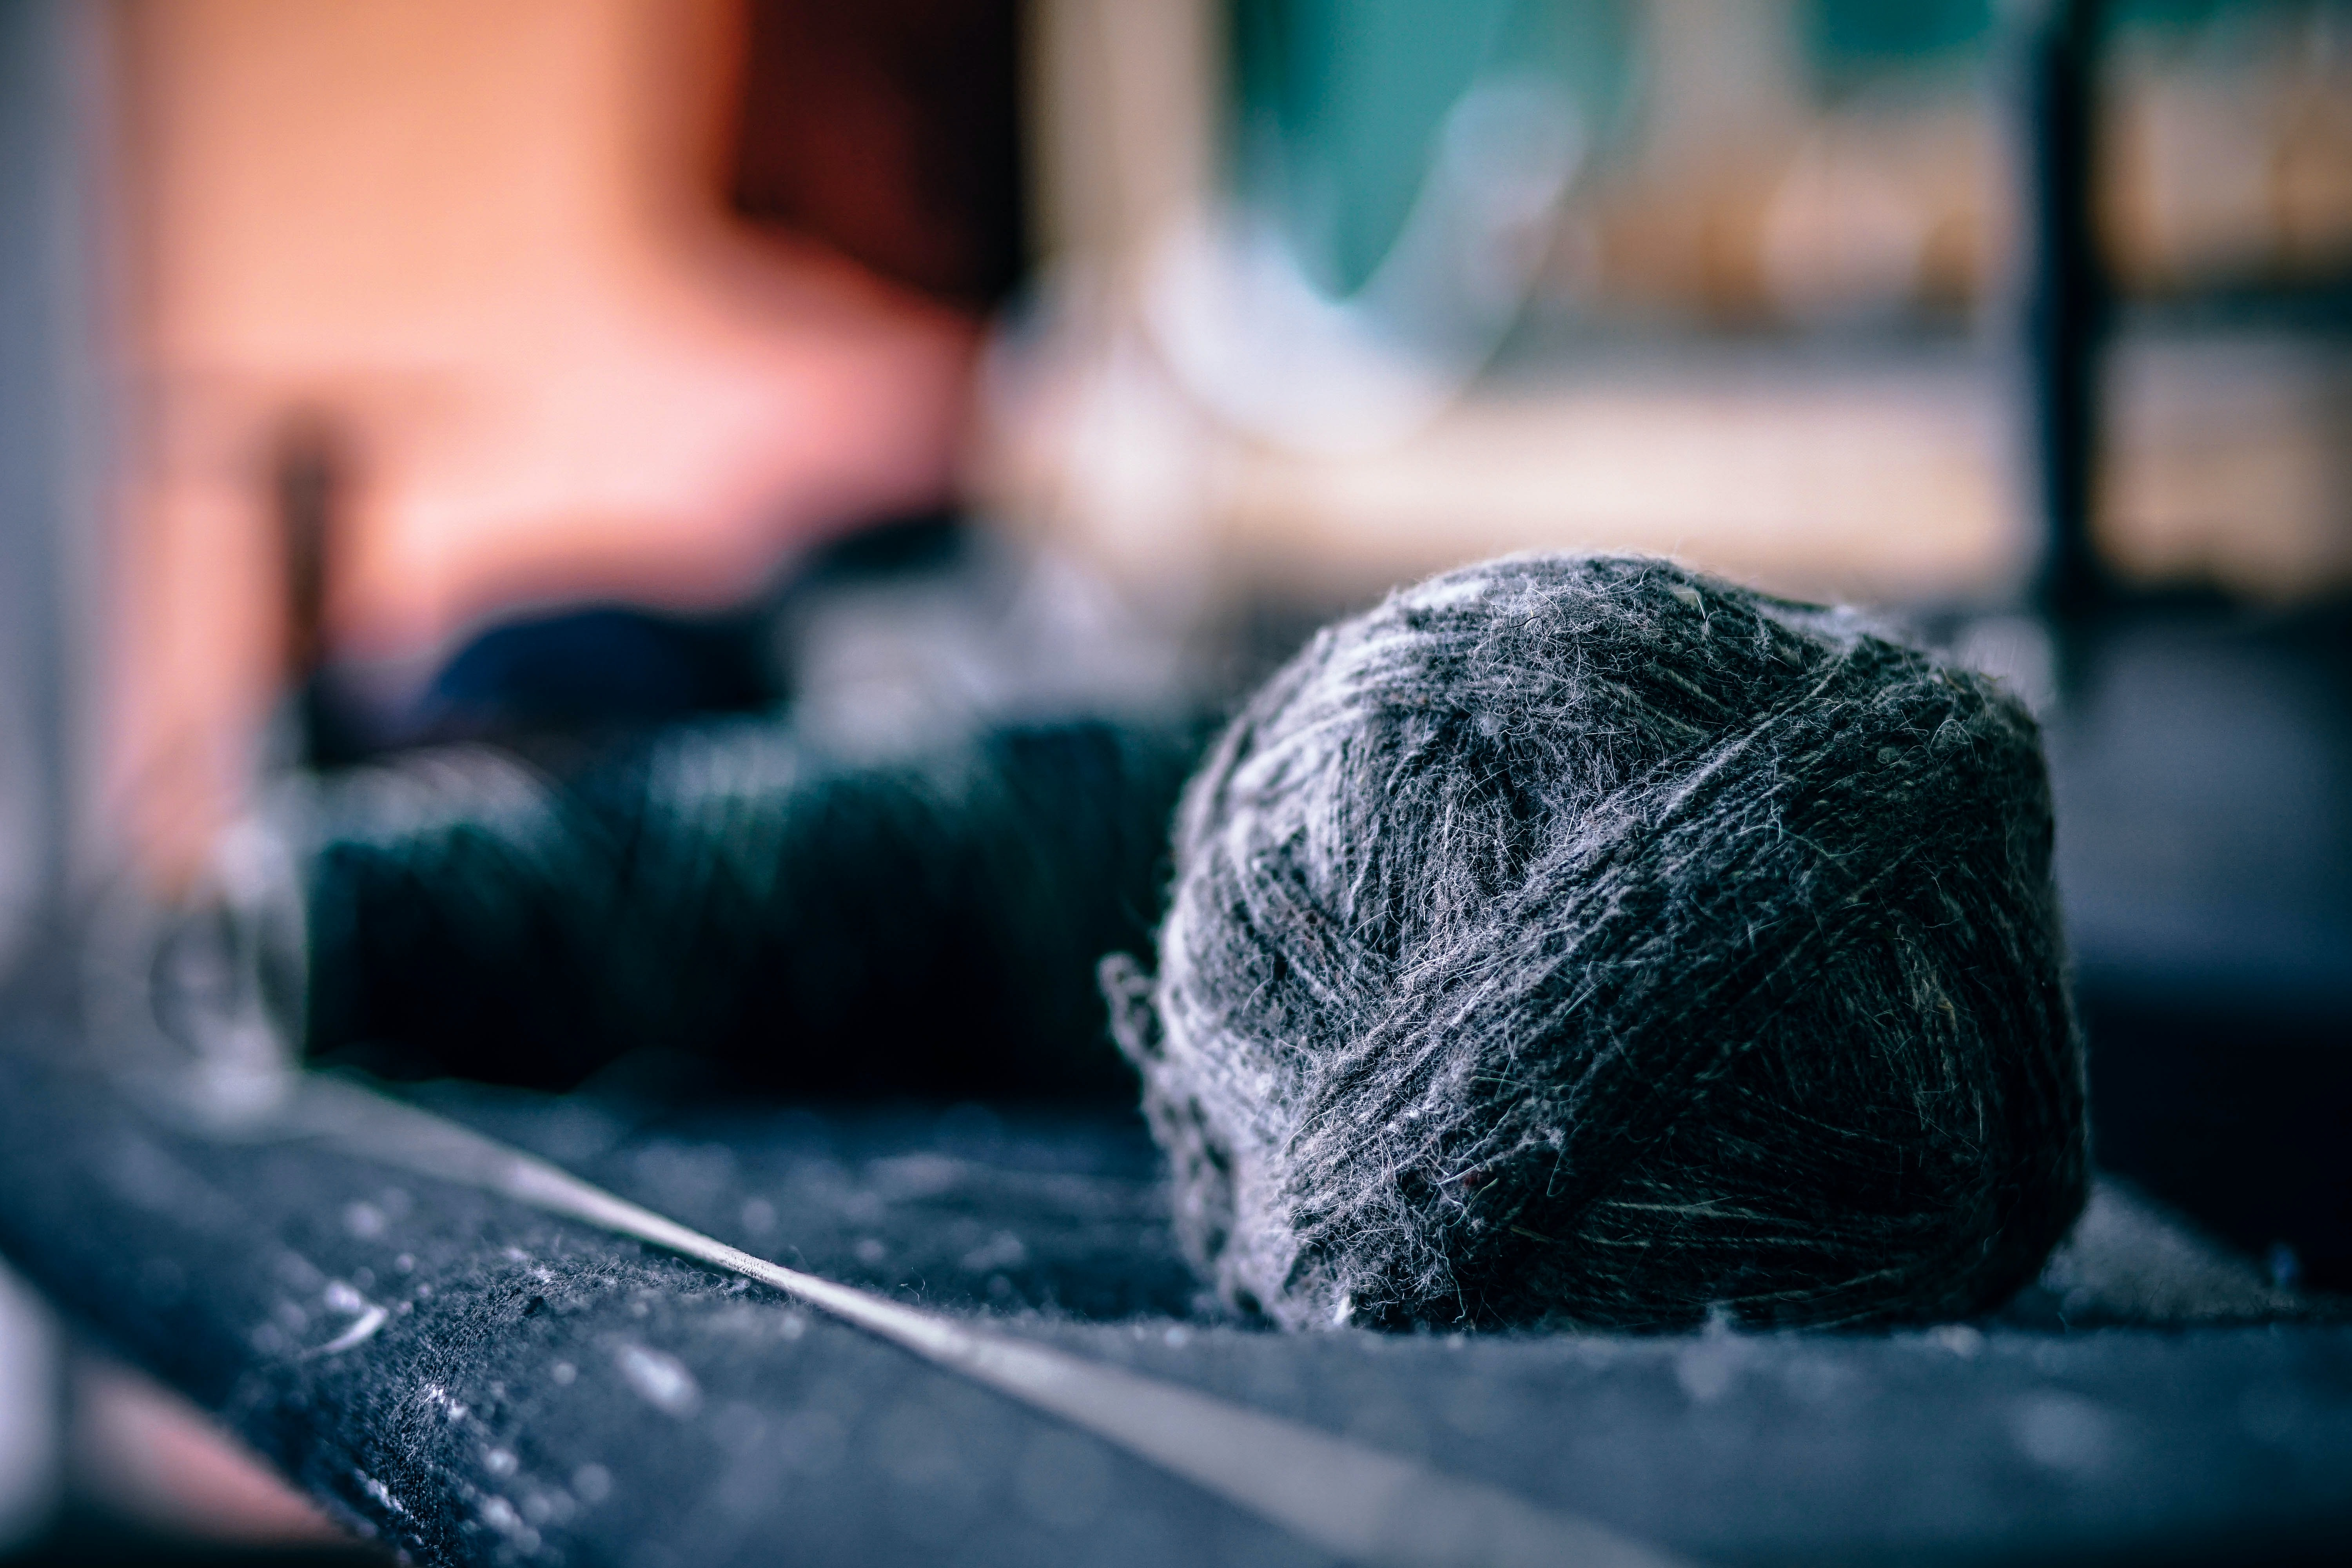 A ball of yarn besides spools of thread and fabric